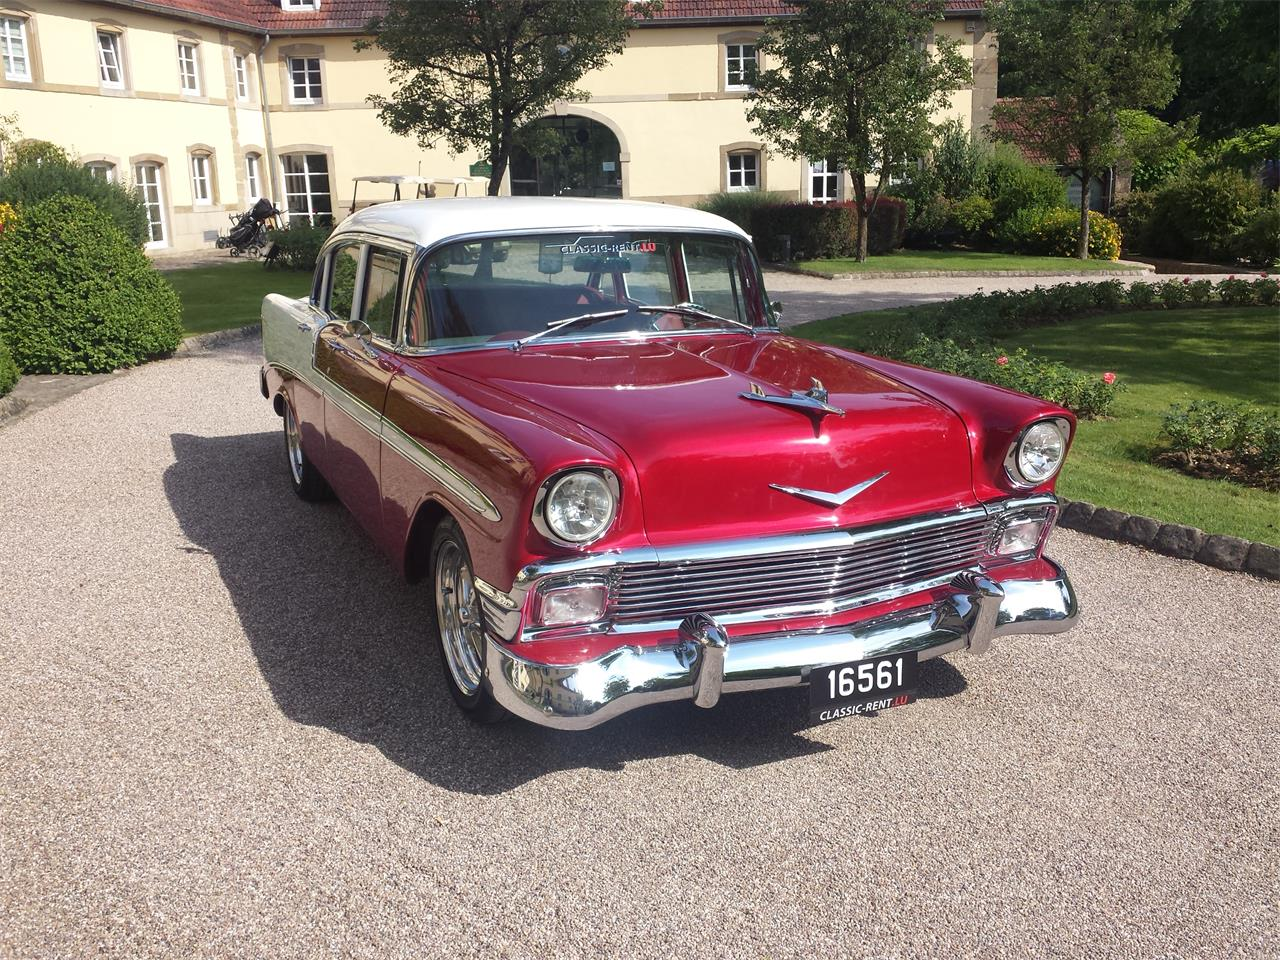 1956 Chevrolet Bel Air (CC-1294533) for sale in DIPPACH, DIPPACH